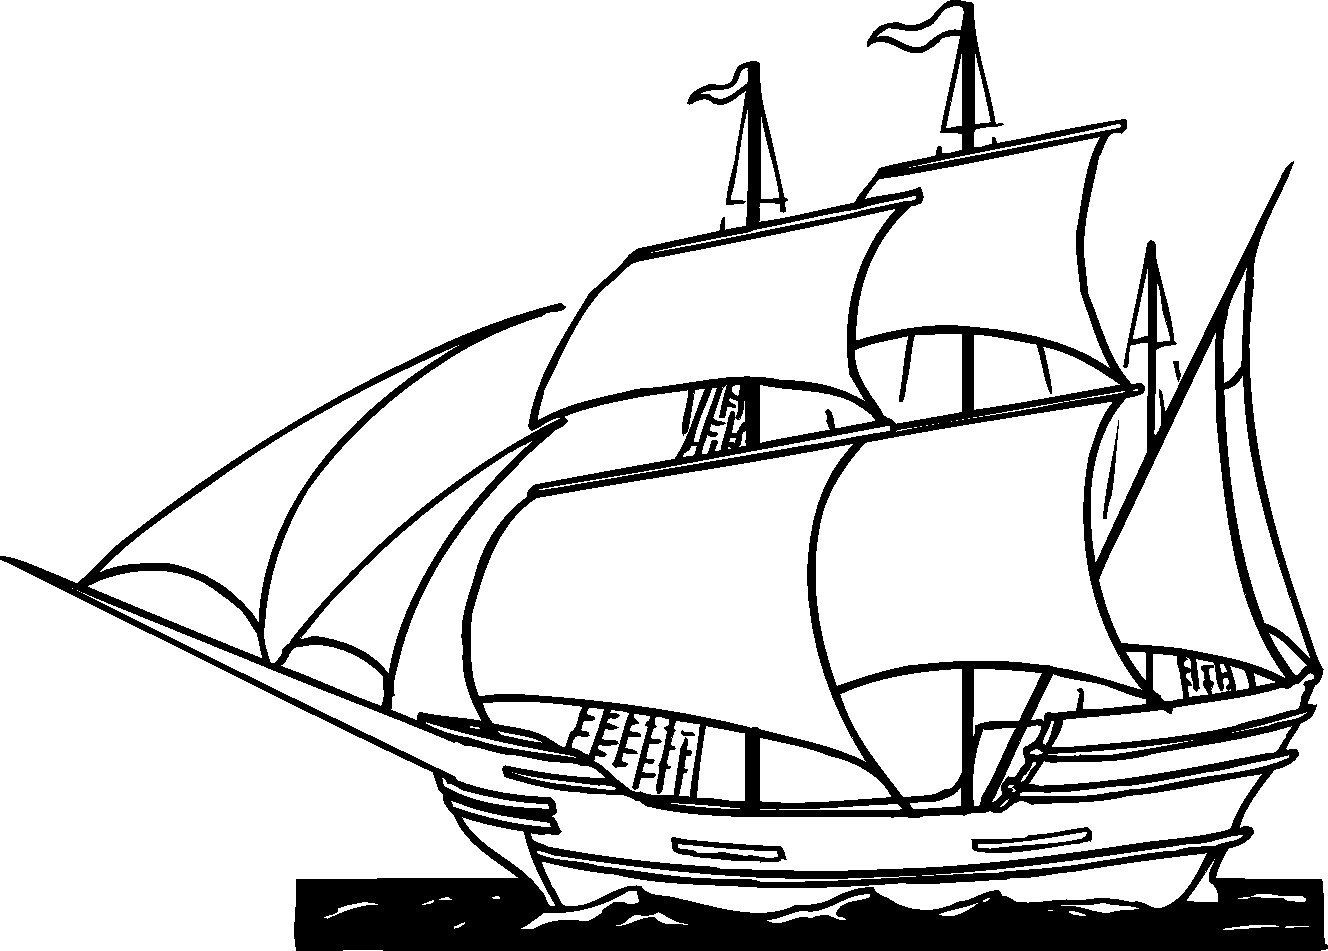 Odysseus Coloring Pages At Getdrawings Com Free For Personal Use